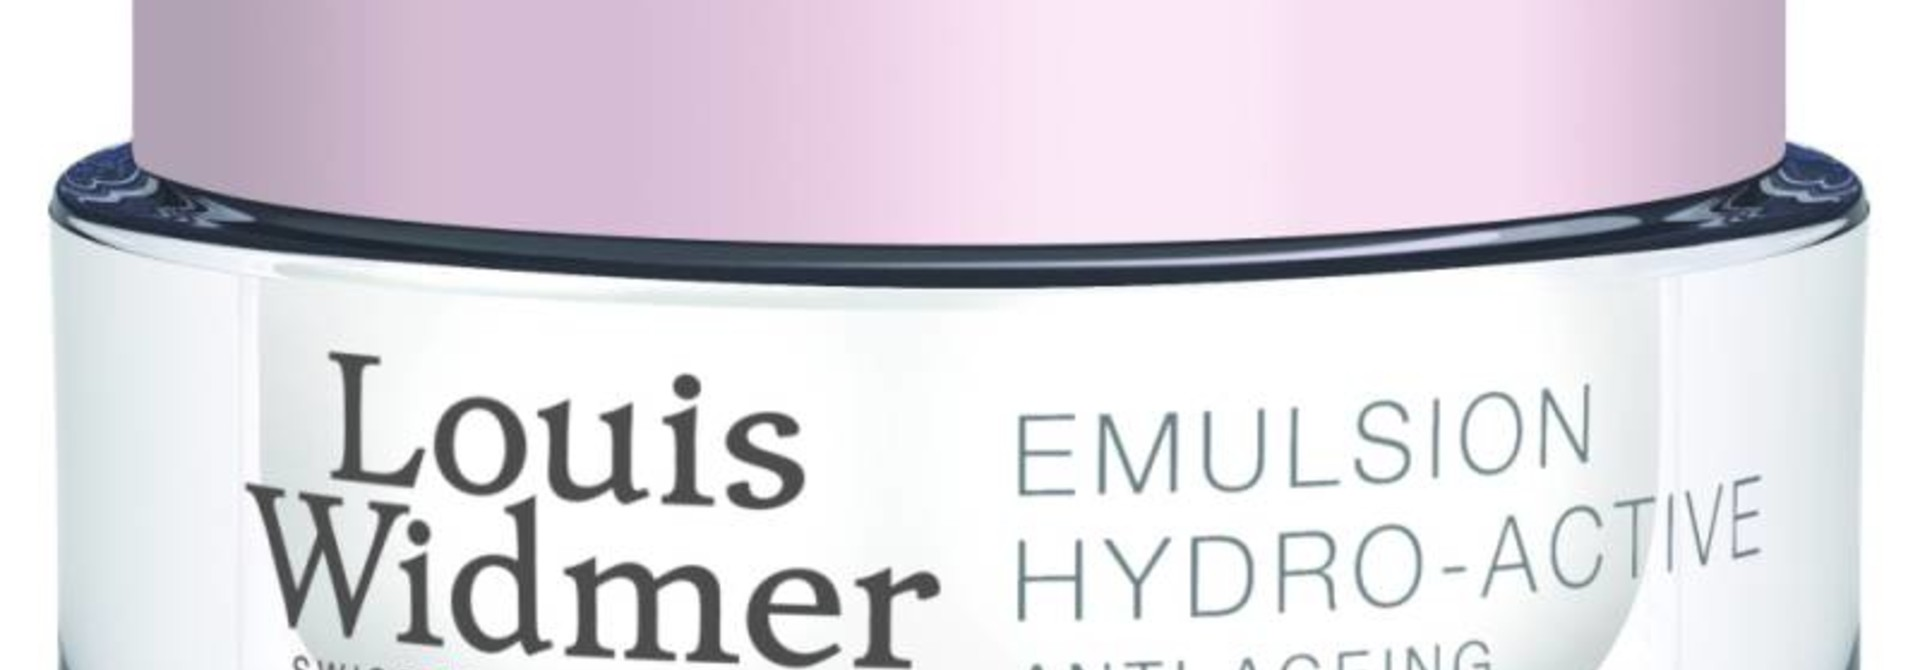 Emulsion Hydro-Active 50 ml ongeparfumeerd